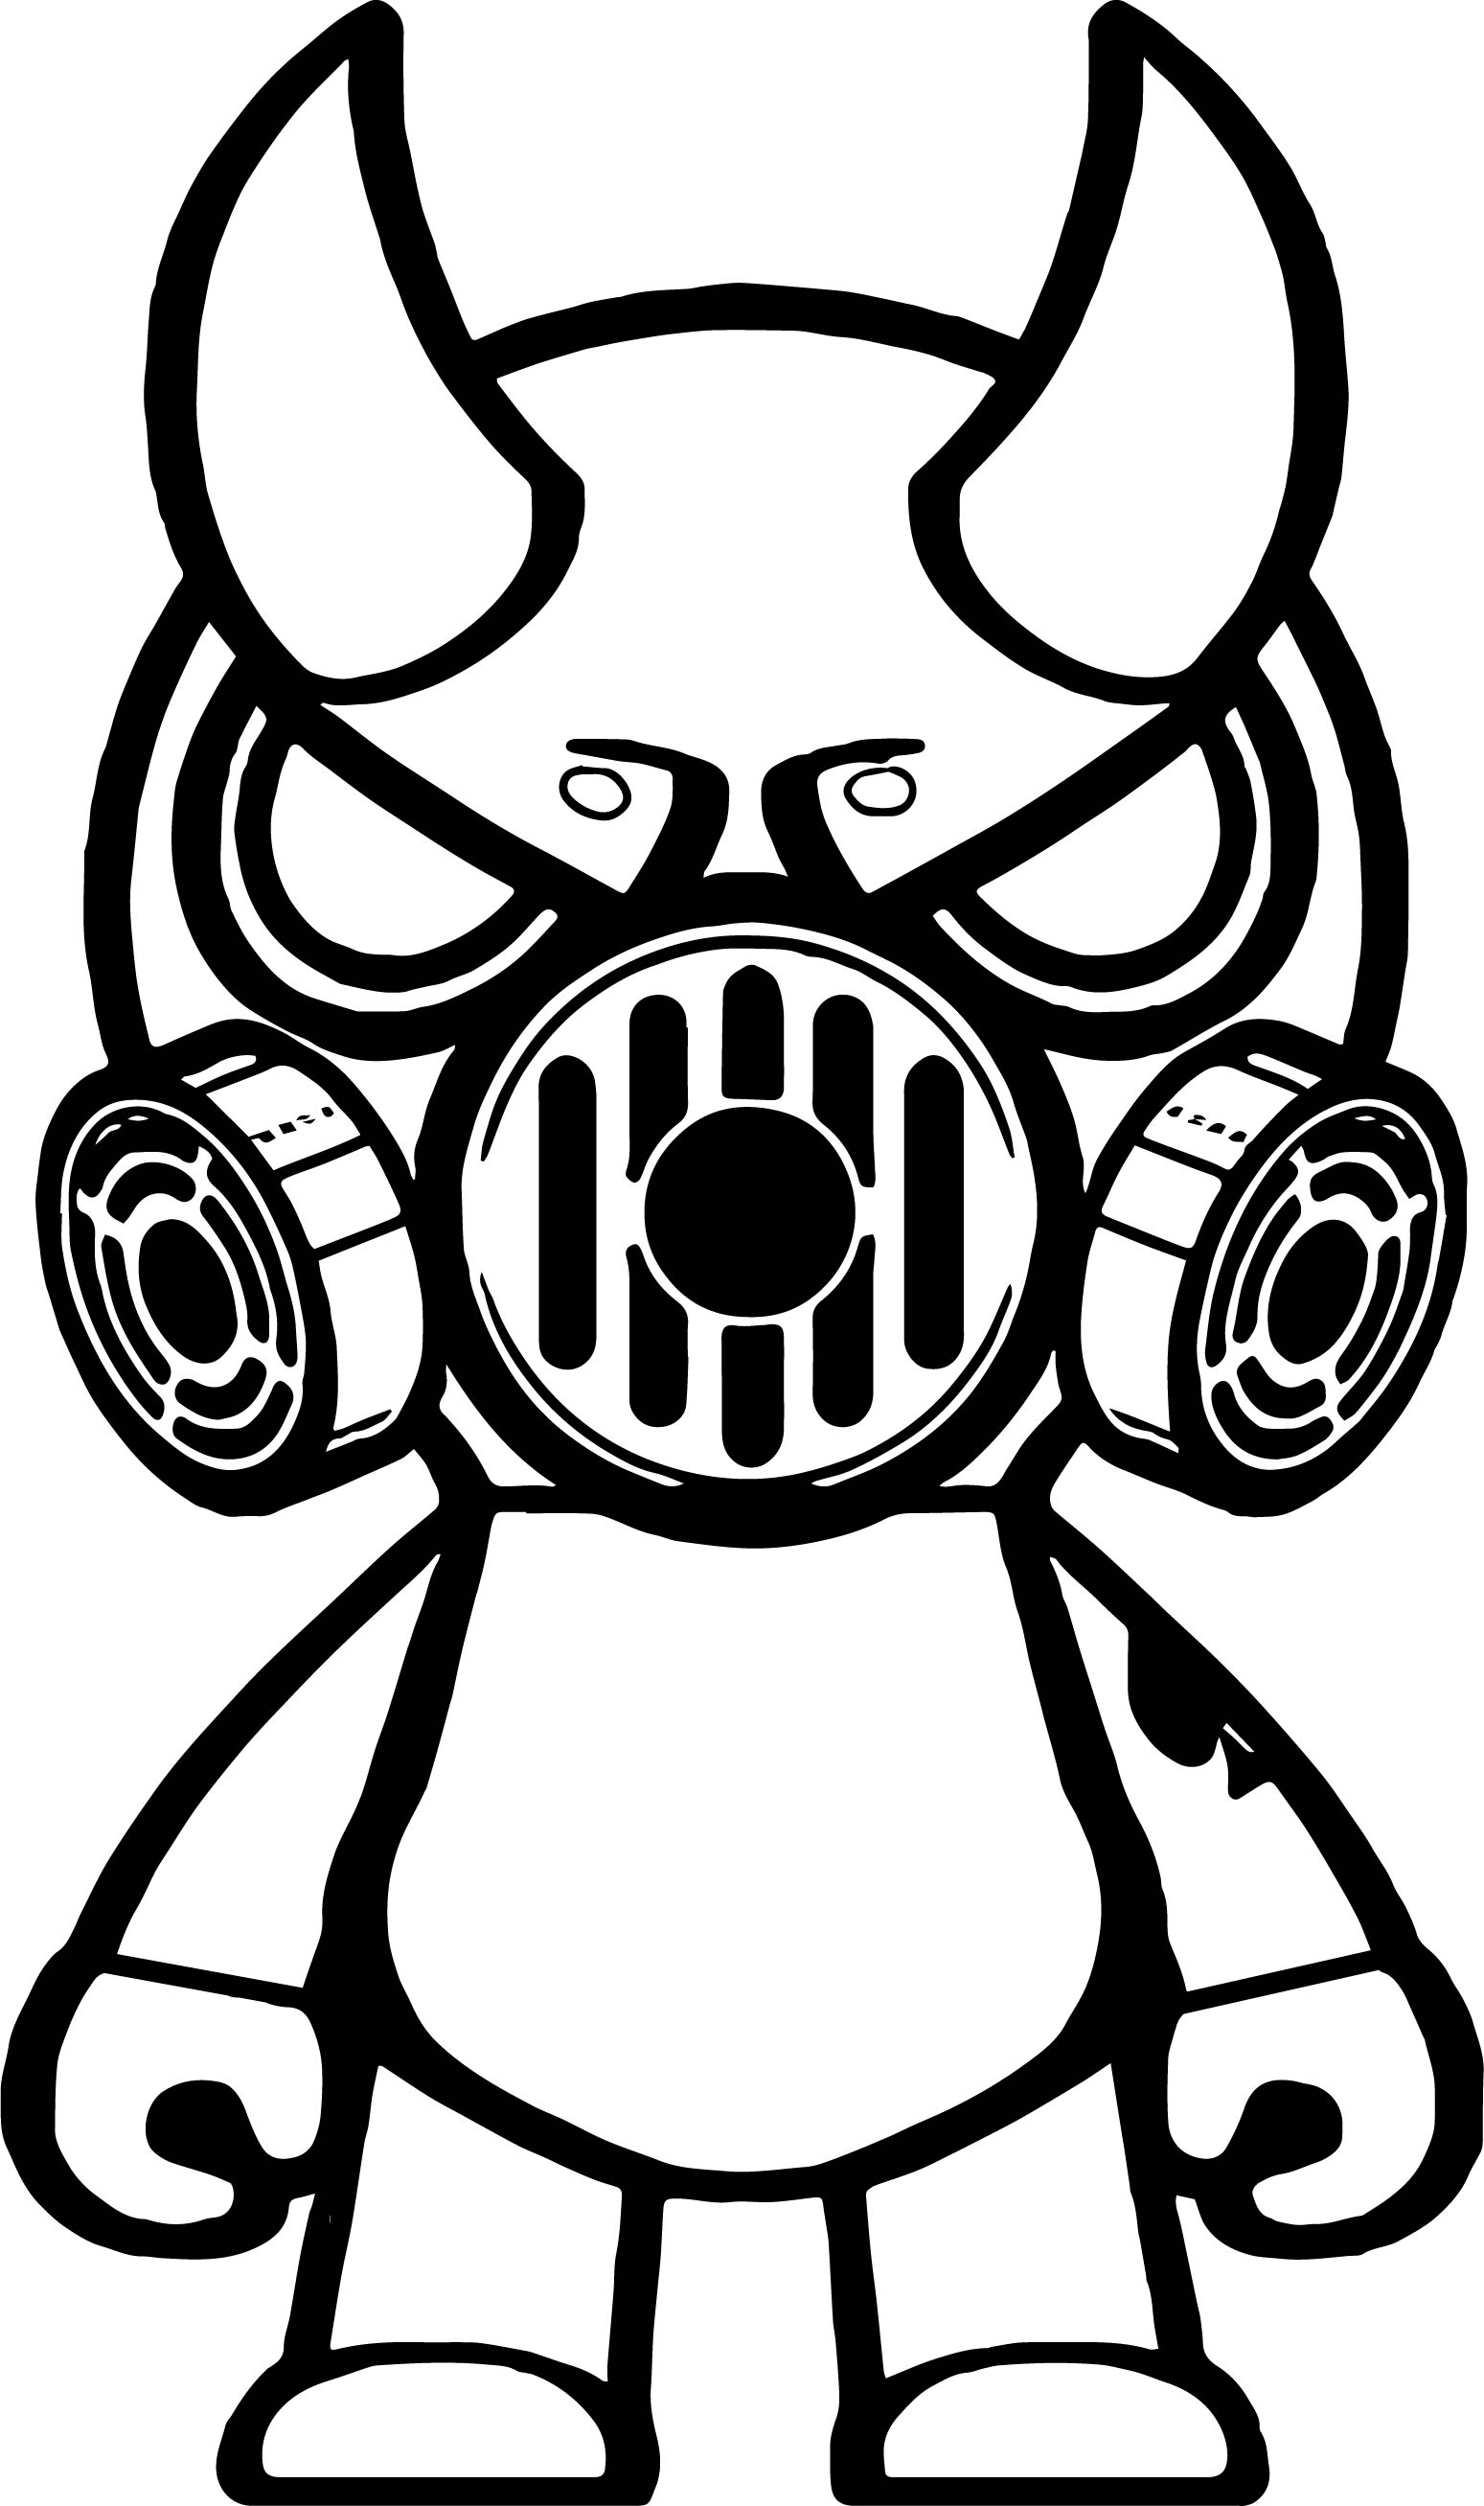 Gas mask oni black mask coloring page